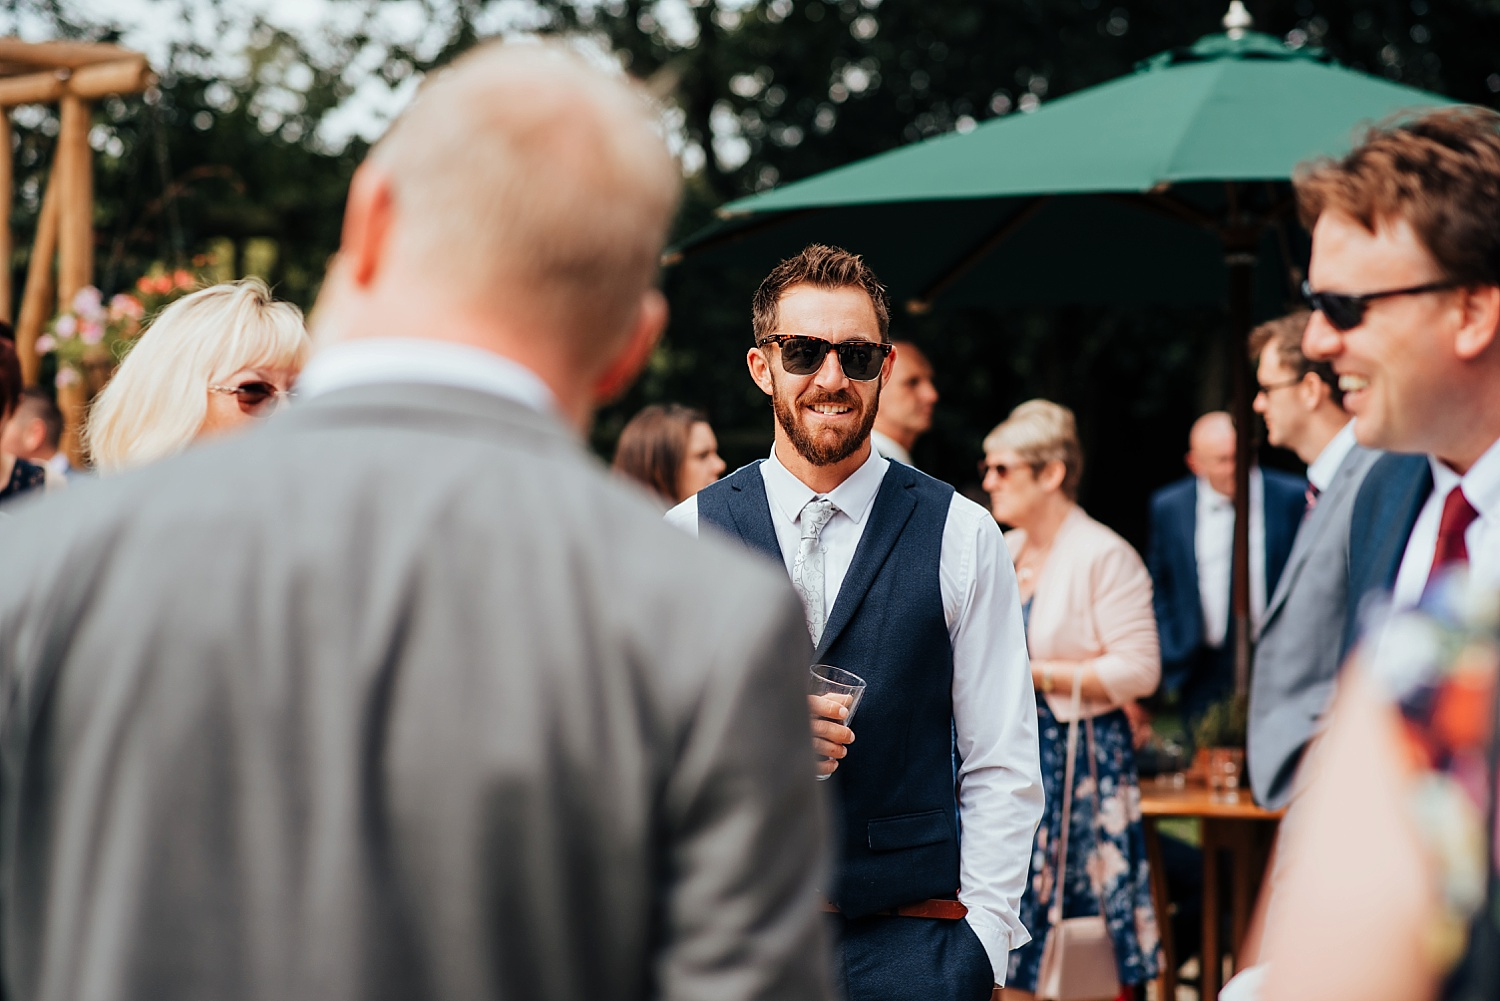 man in suit wearing sunglasses at wedding